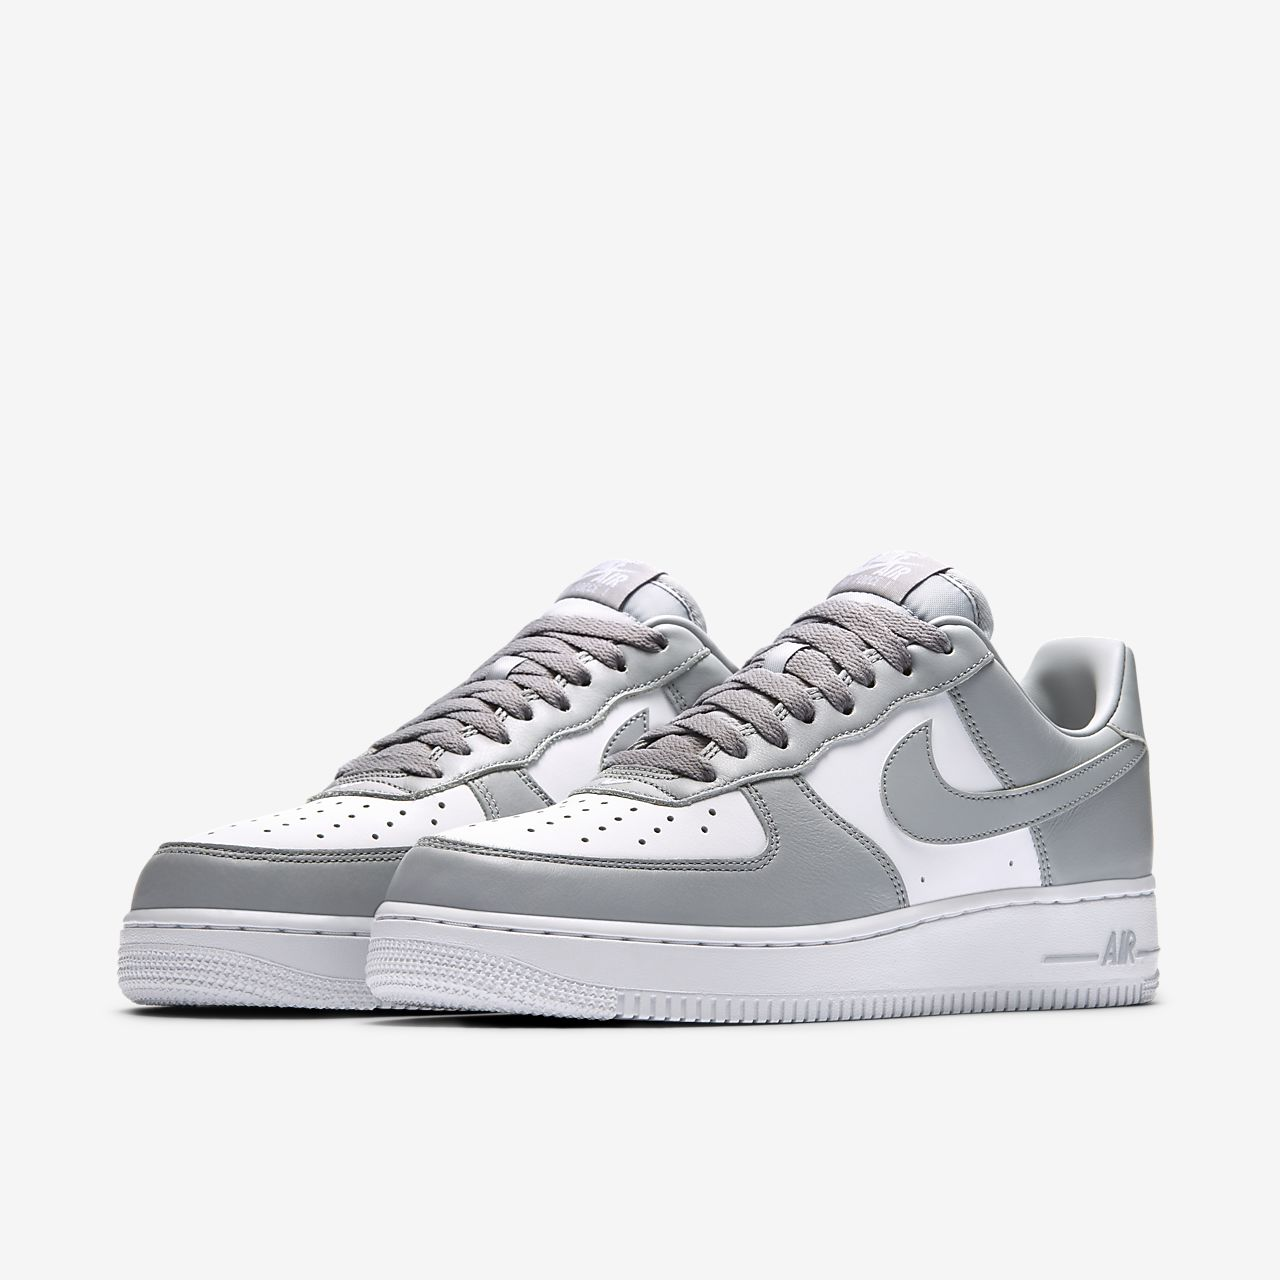 nike air force 1 low men's black white nz